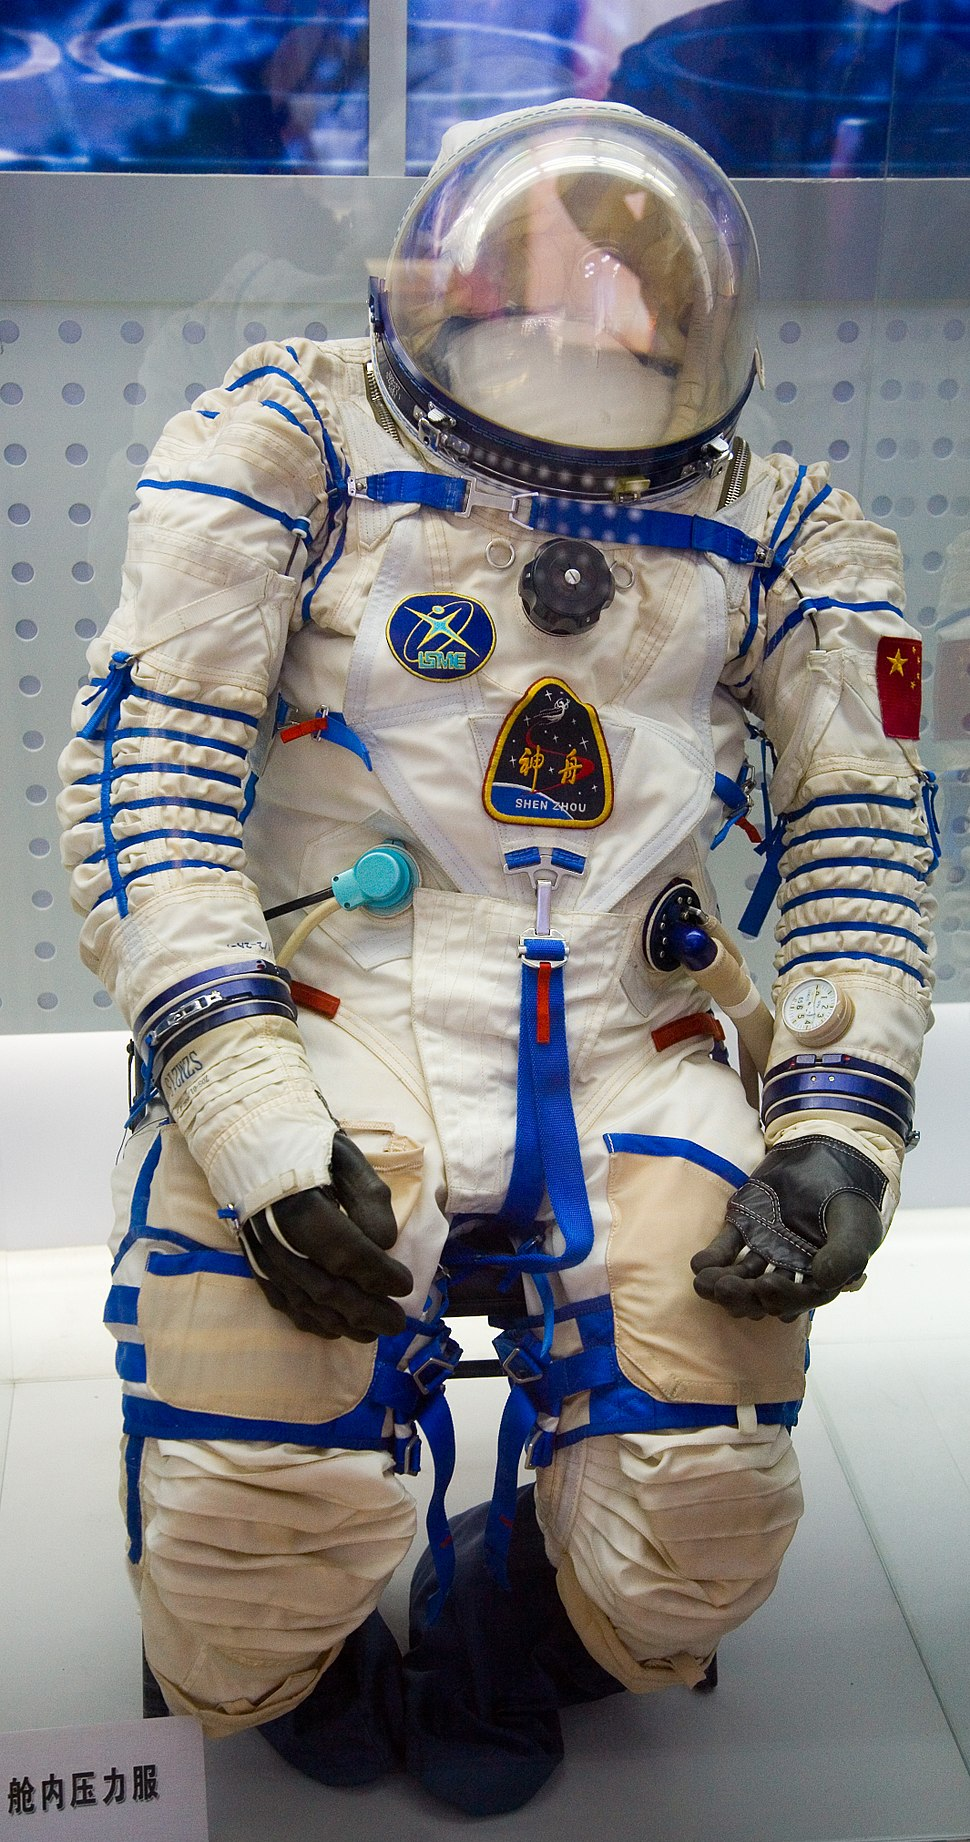 Shenzhou 5 - Chinese Spacesuit on Display